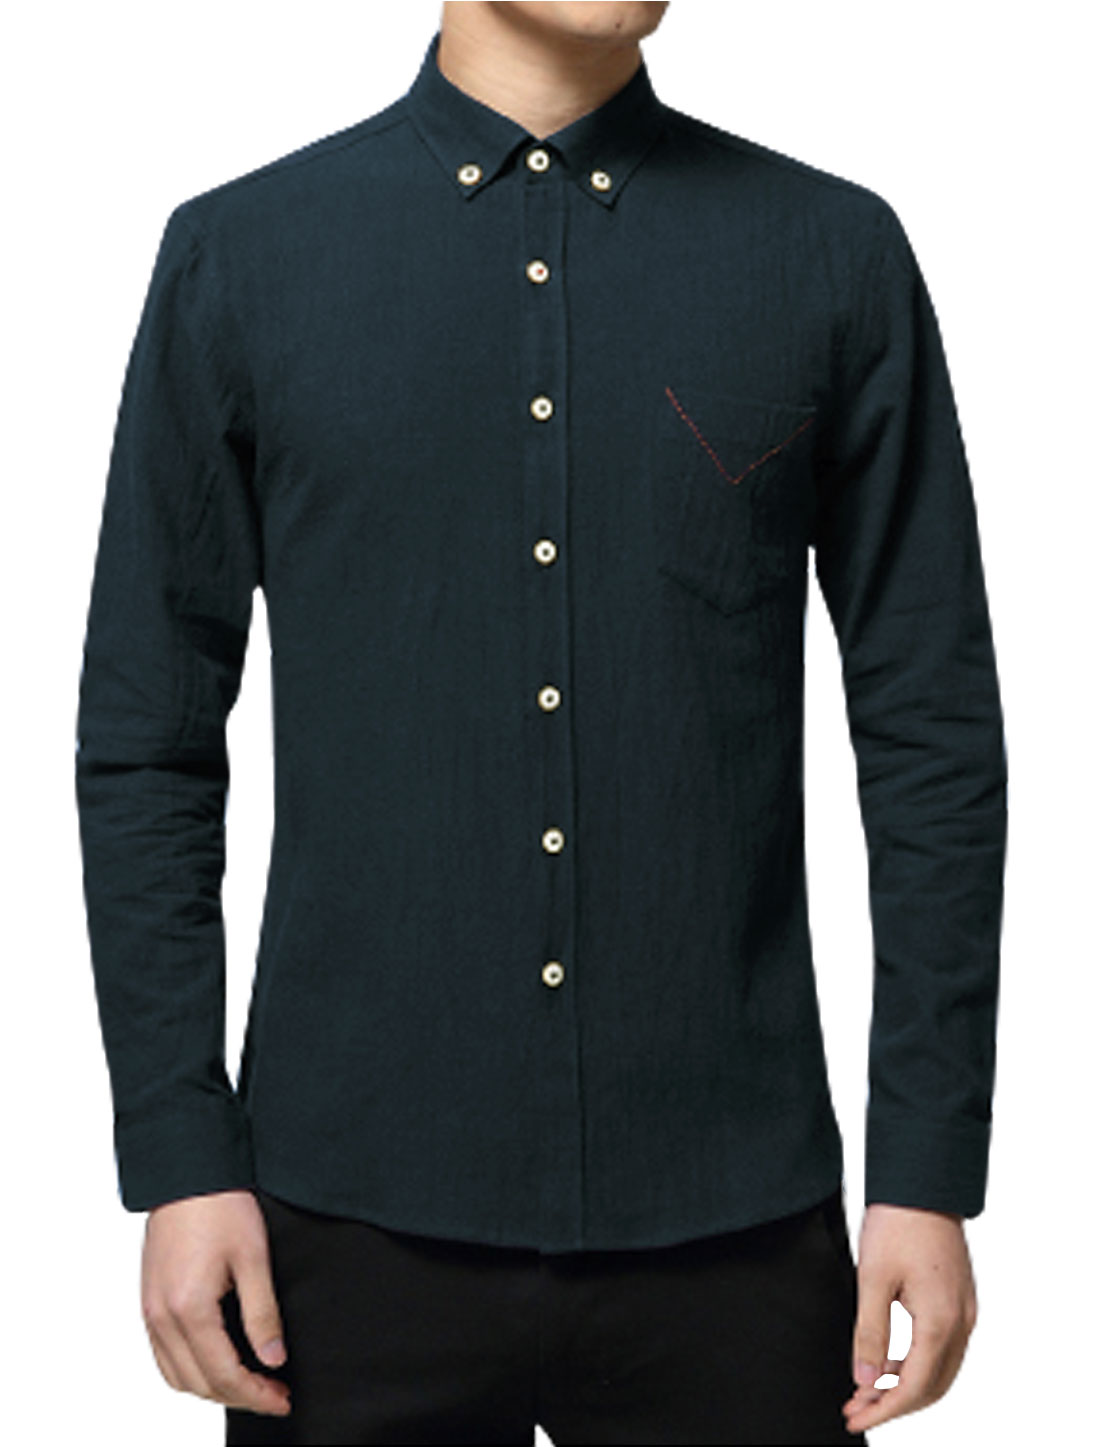 Man Long Sleeves Chest Pocket Slim Fit Button Down Shirt Navy Blue M